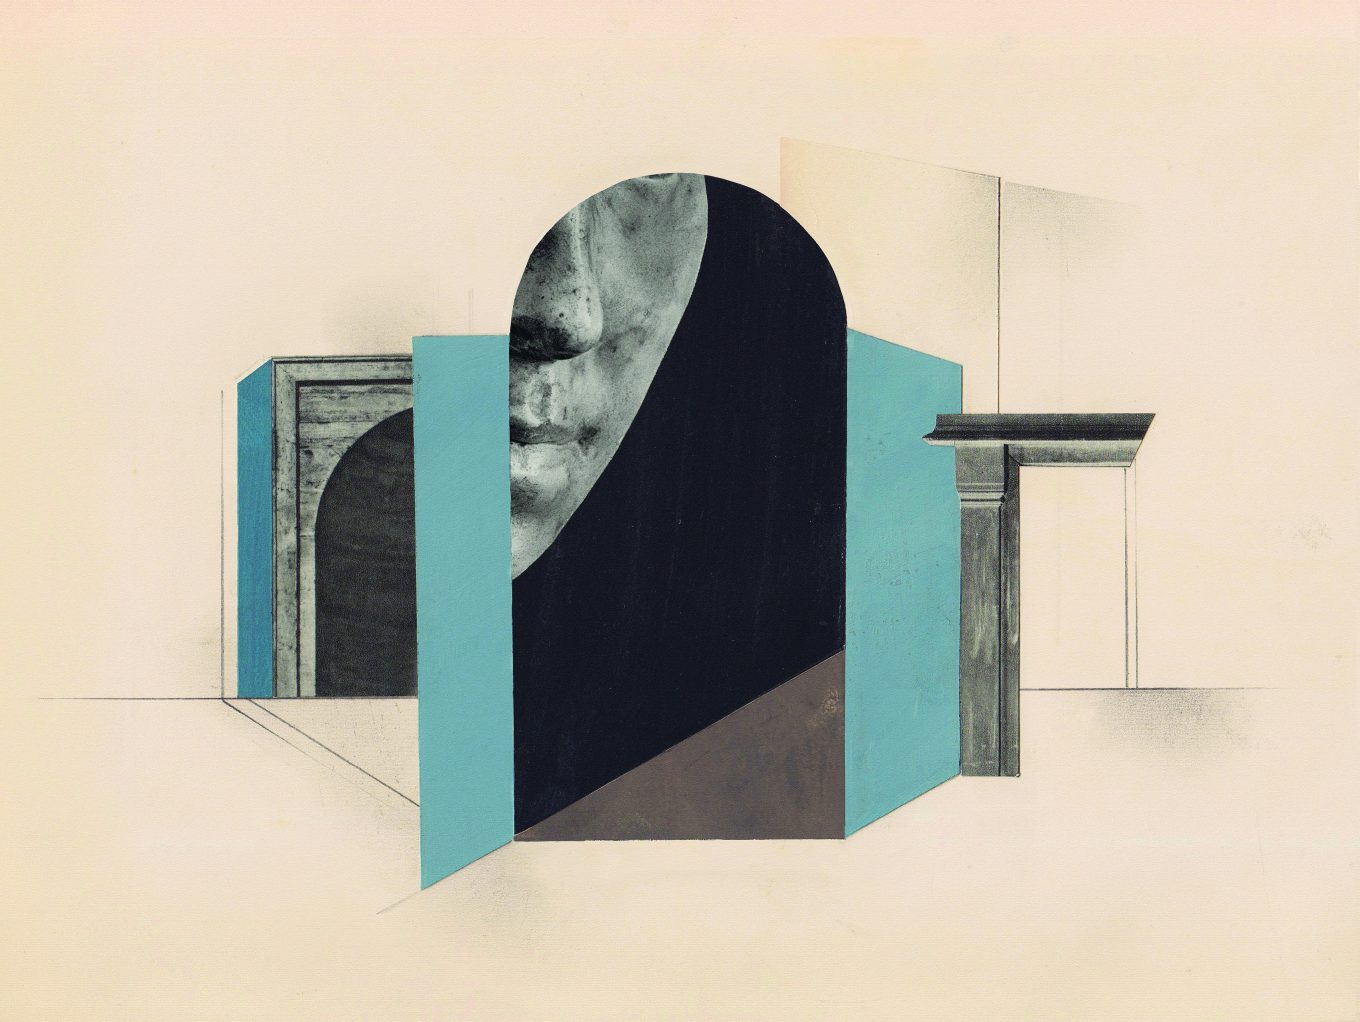 Concept art of a person's face appearing partially through a doorway